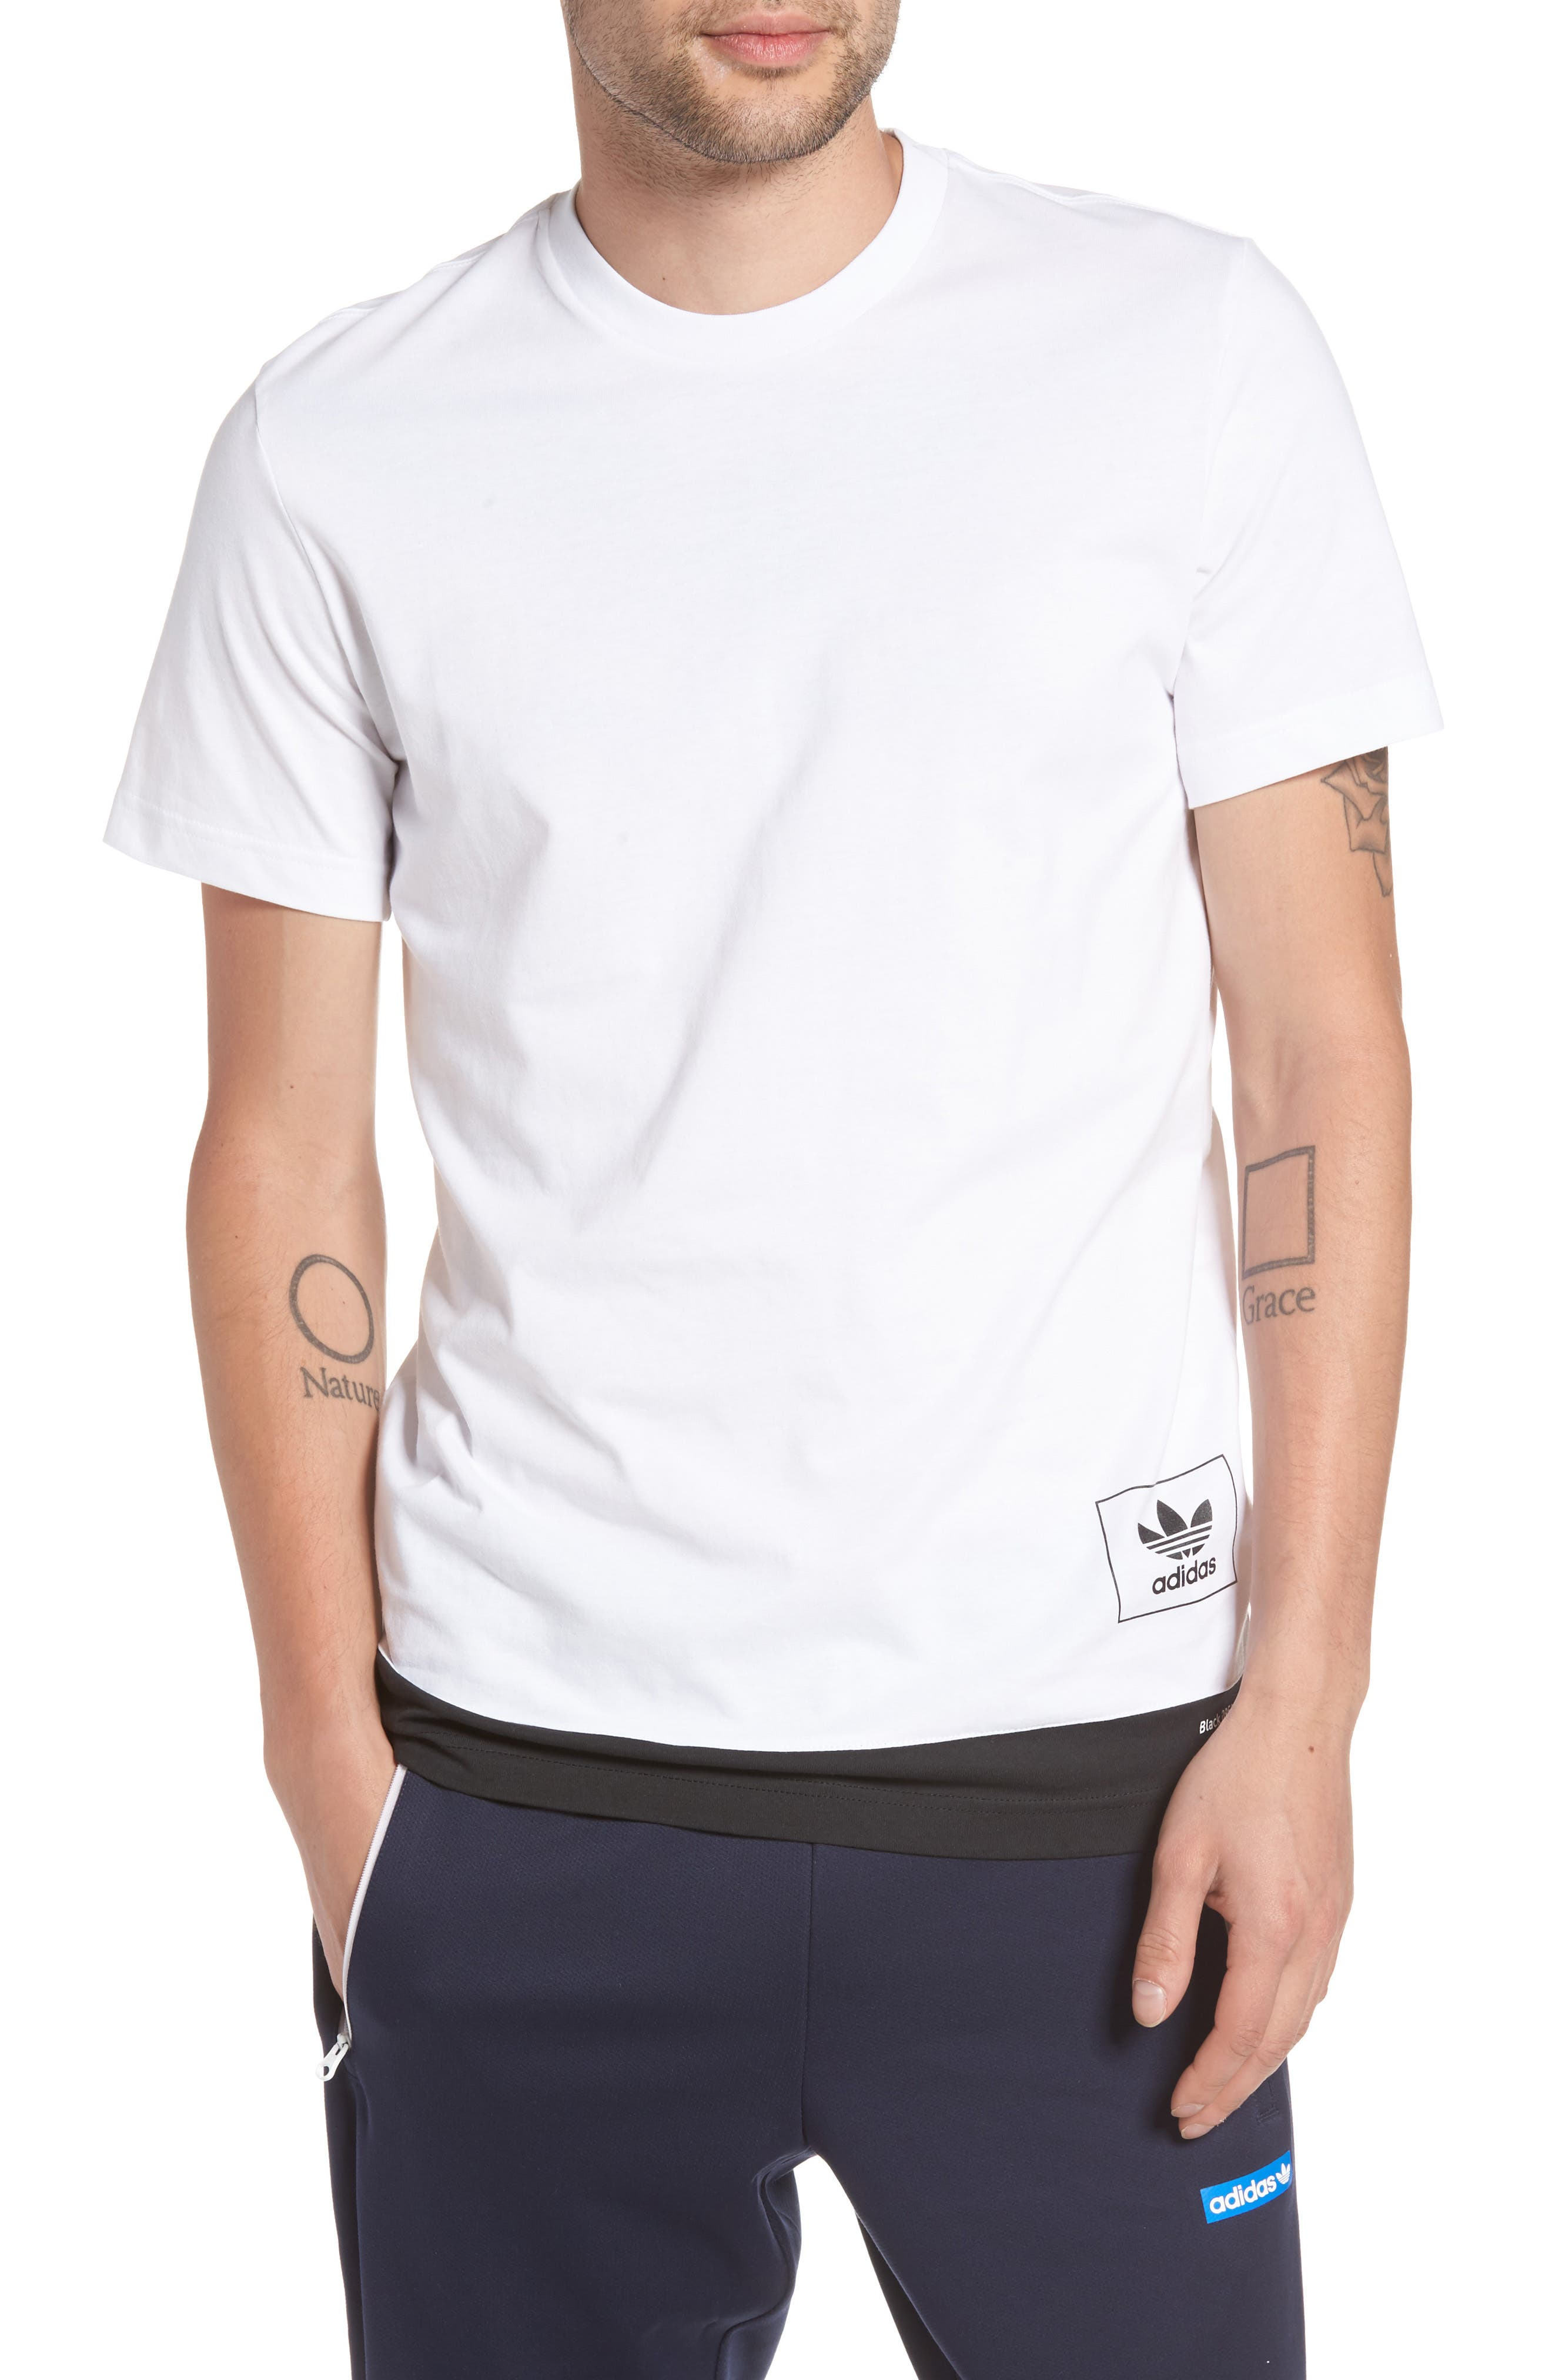 adidas Originals Footwear Link T-Shirt